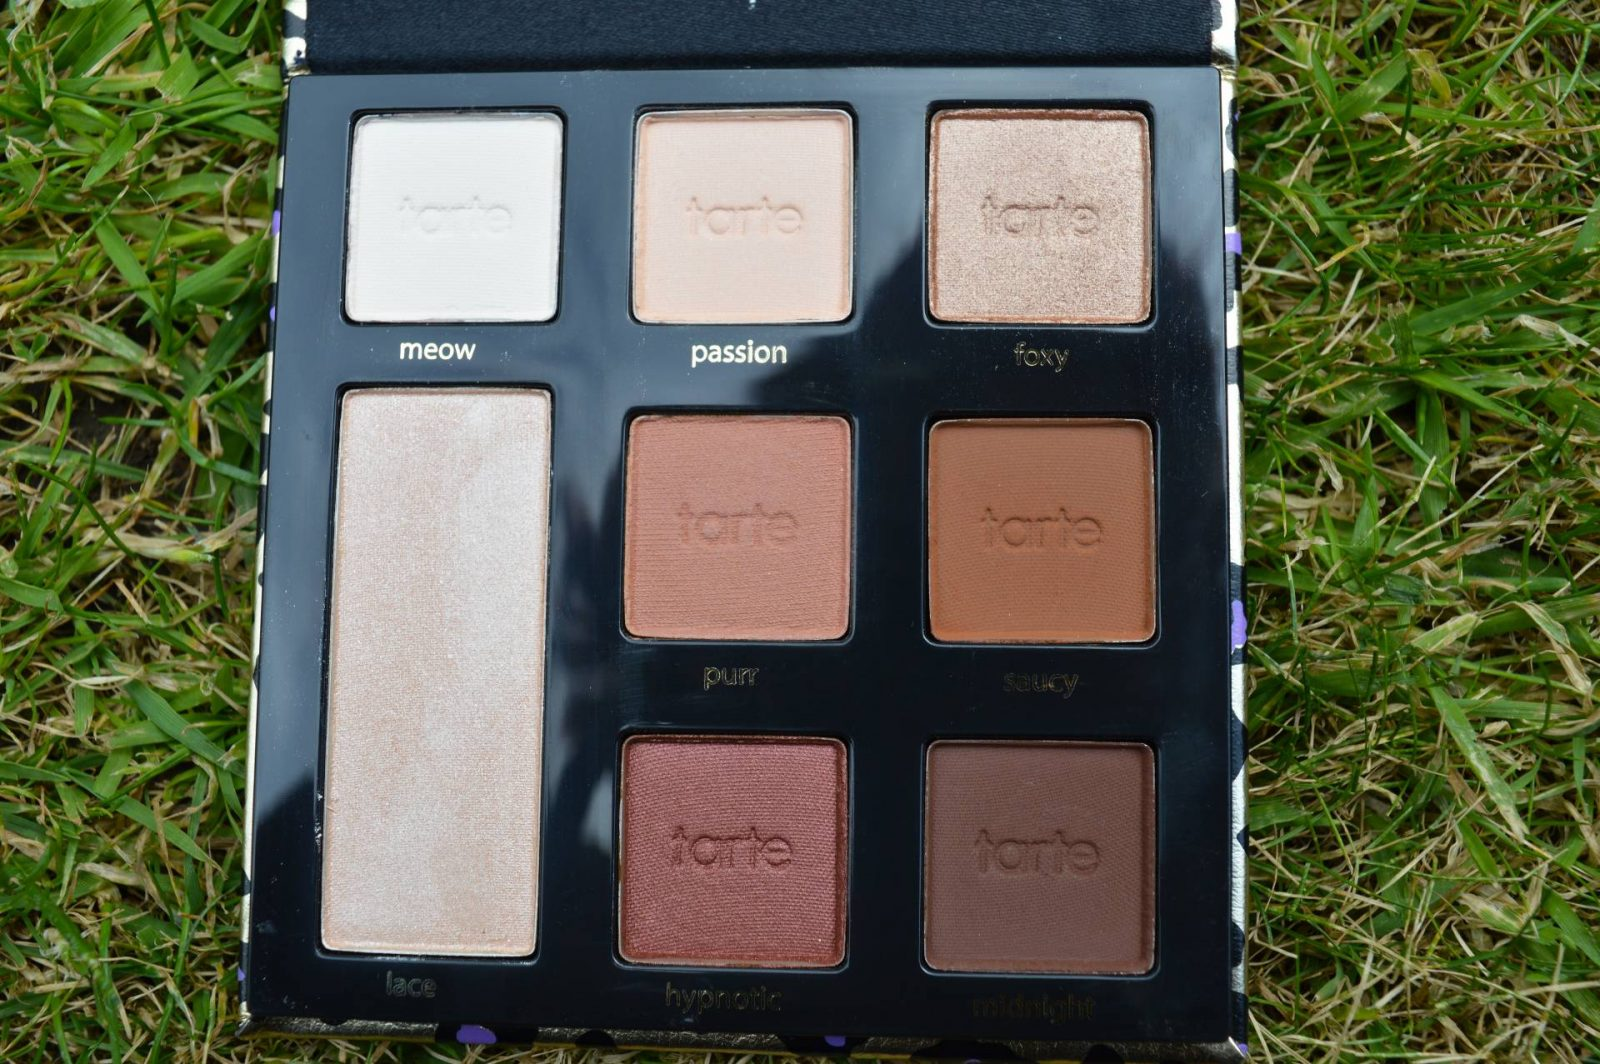 Tarte 7 Piece Maneater Make-up Collection and Bag eyeshadow palette